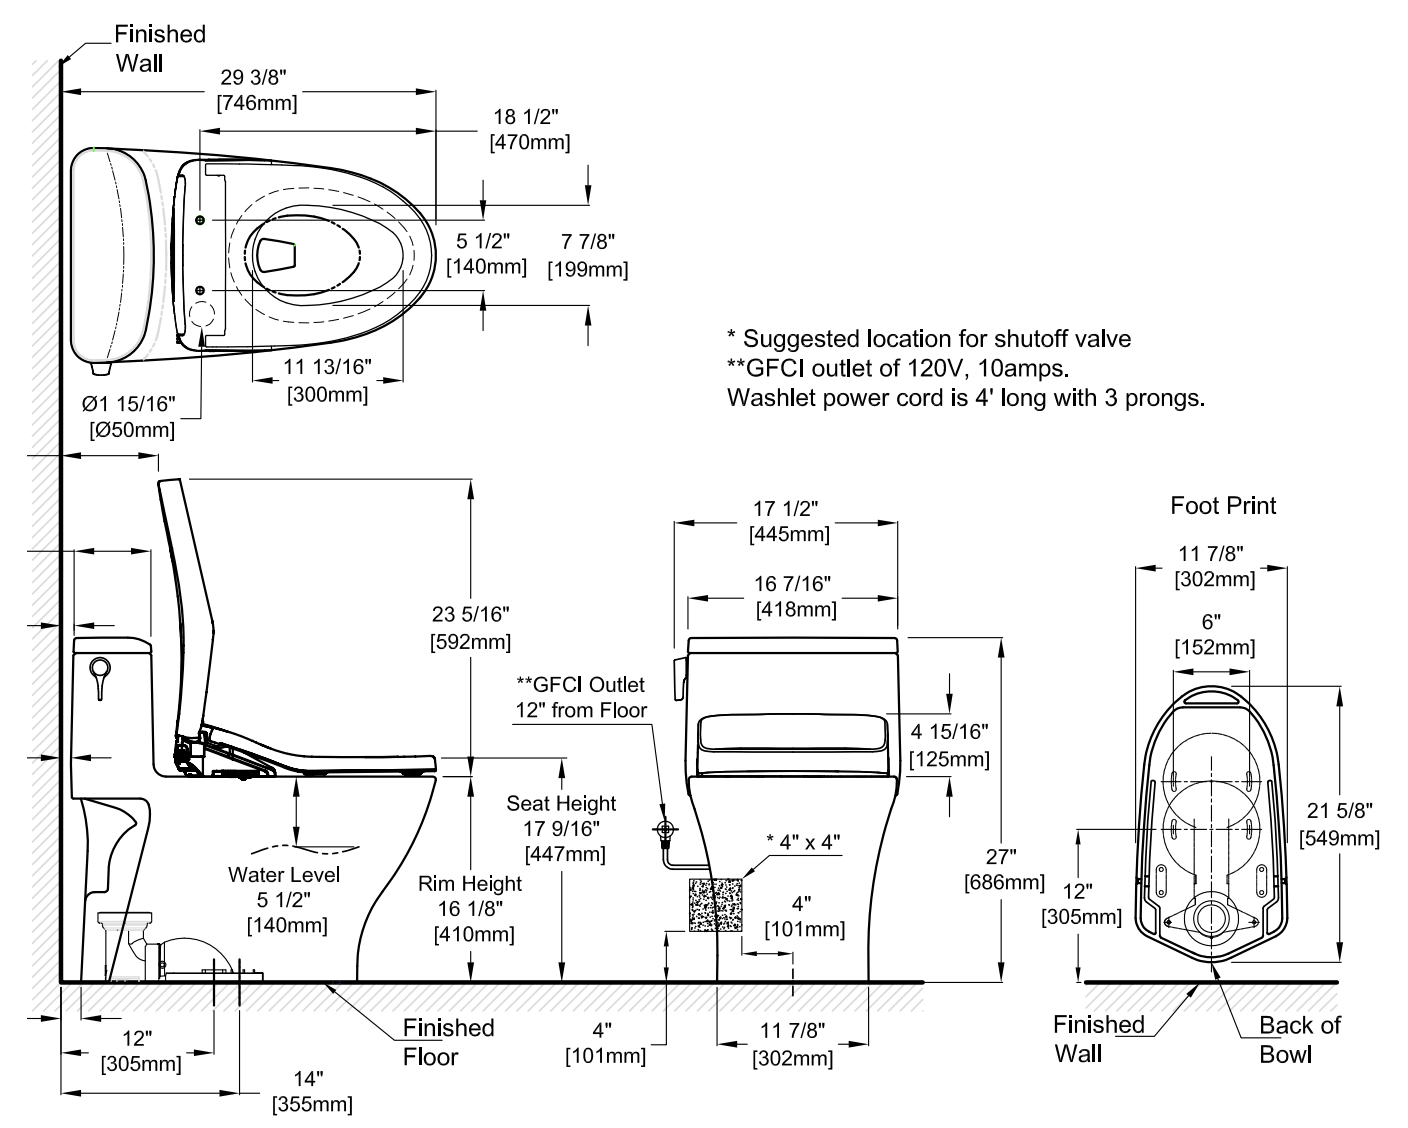 nexus-washlet-s550e-one-piece-toilet-1.28-gpf-diagram.png